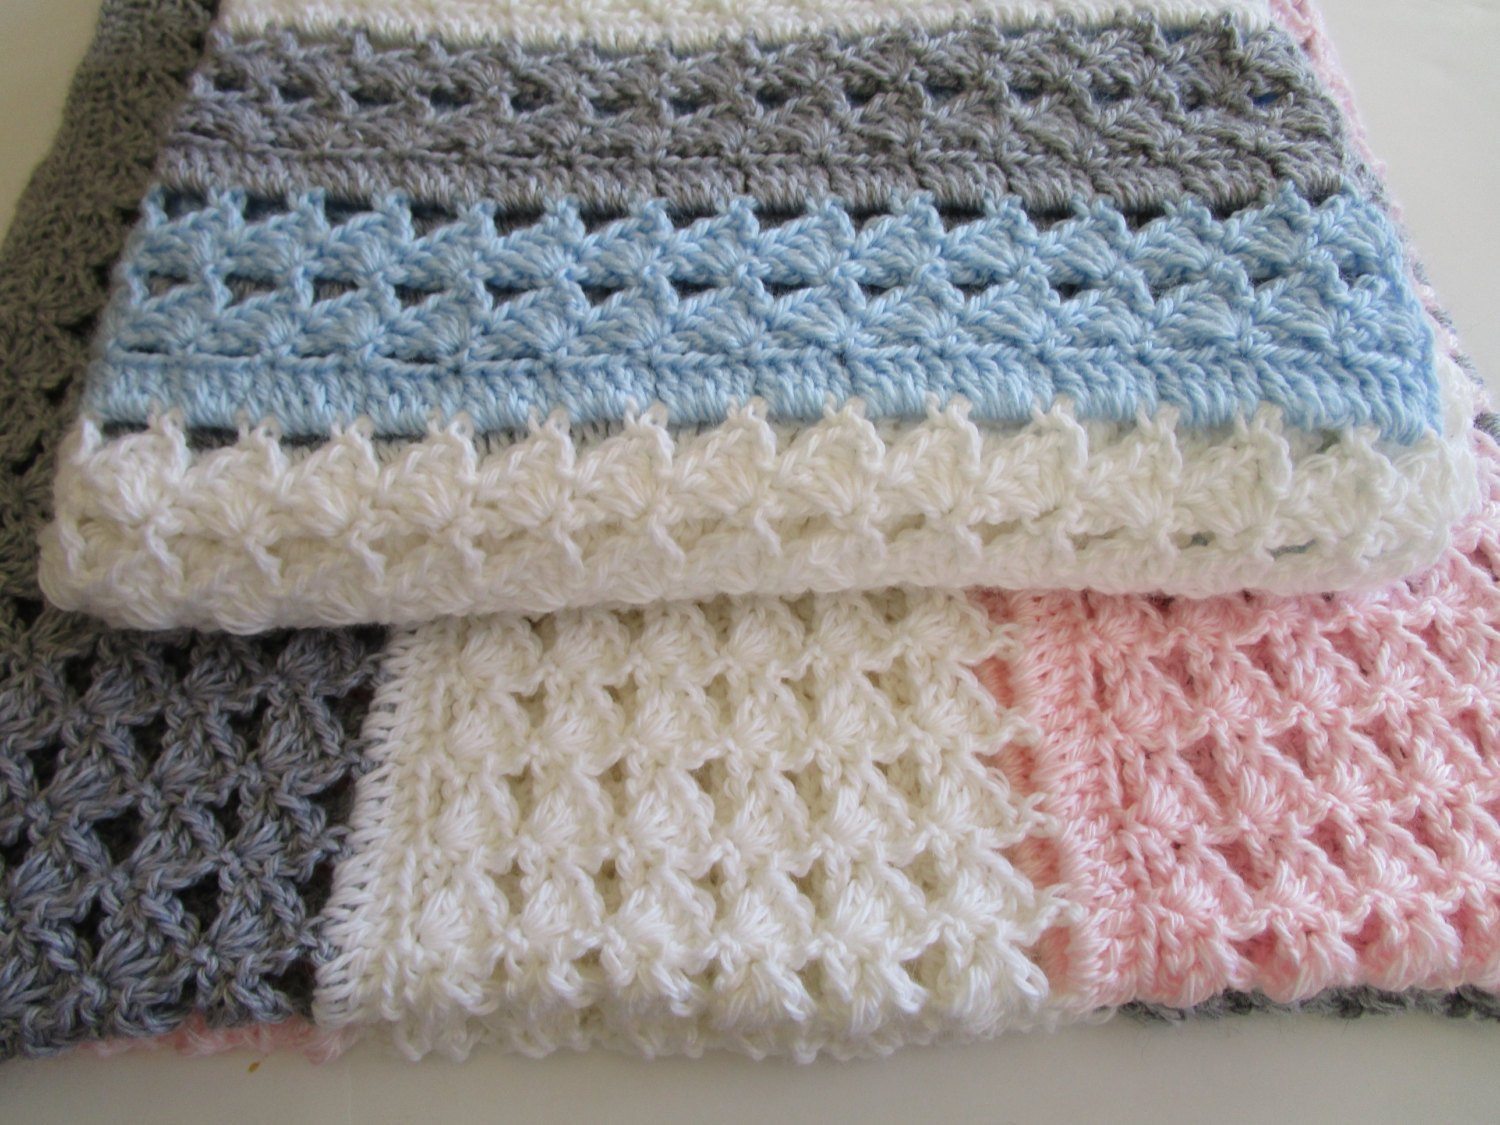 New Easy Crochet Blanket Pattern Slanted Shell Stitch Variation Crochet Shell Baby Blanket Of Lovely 50 Ideas Crochet Shell Baby Blanket